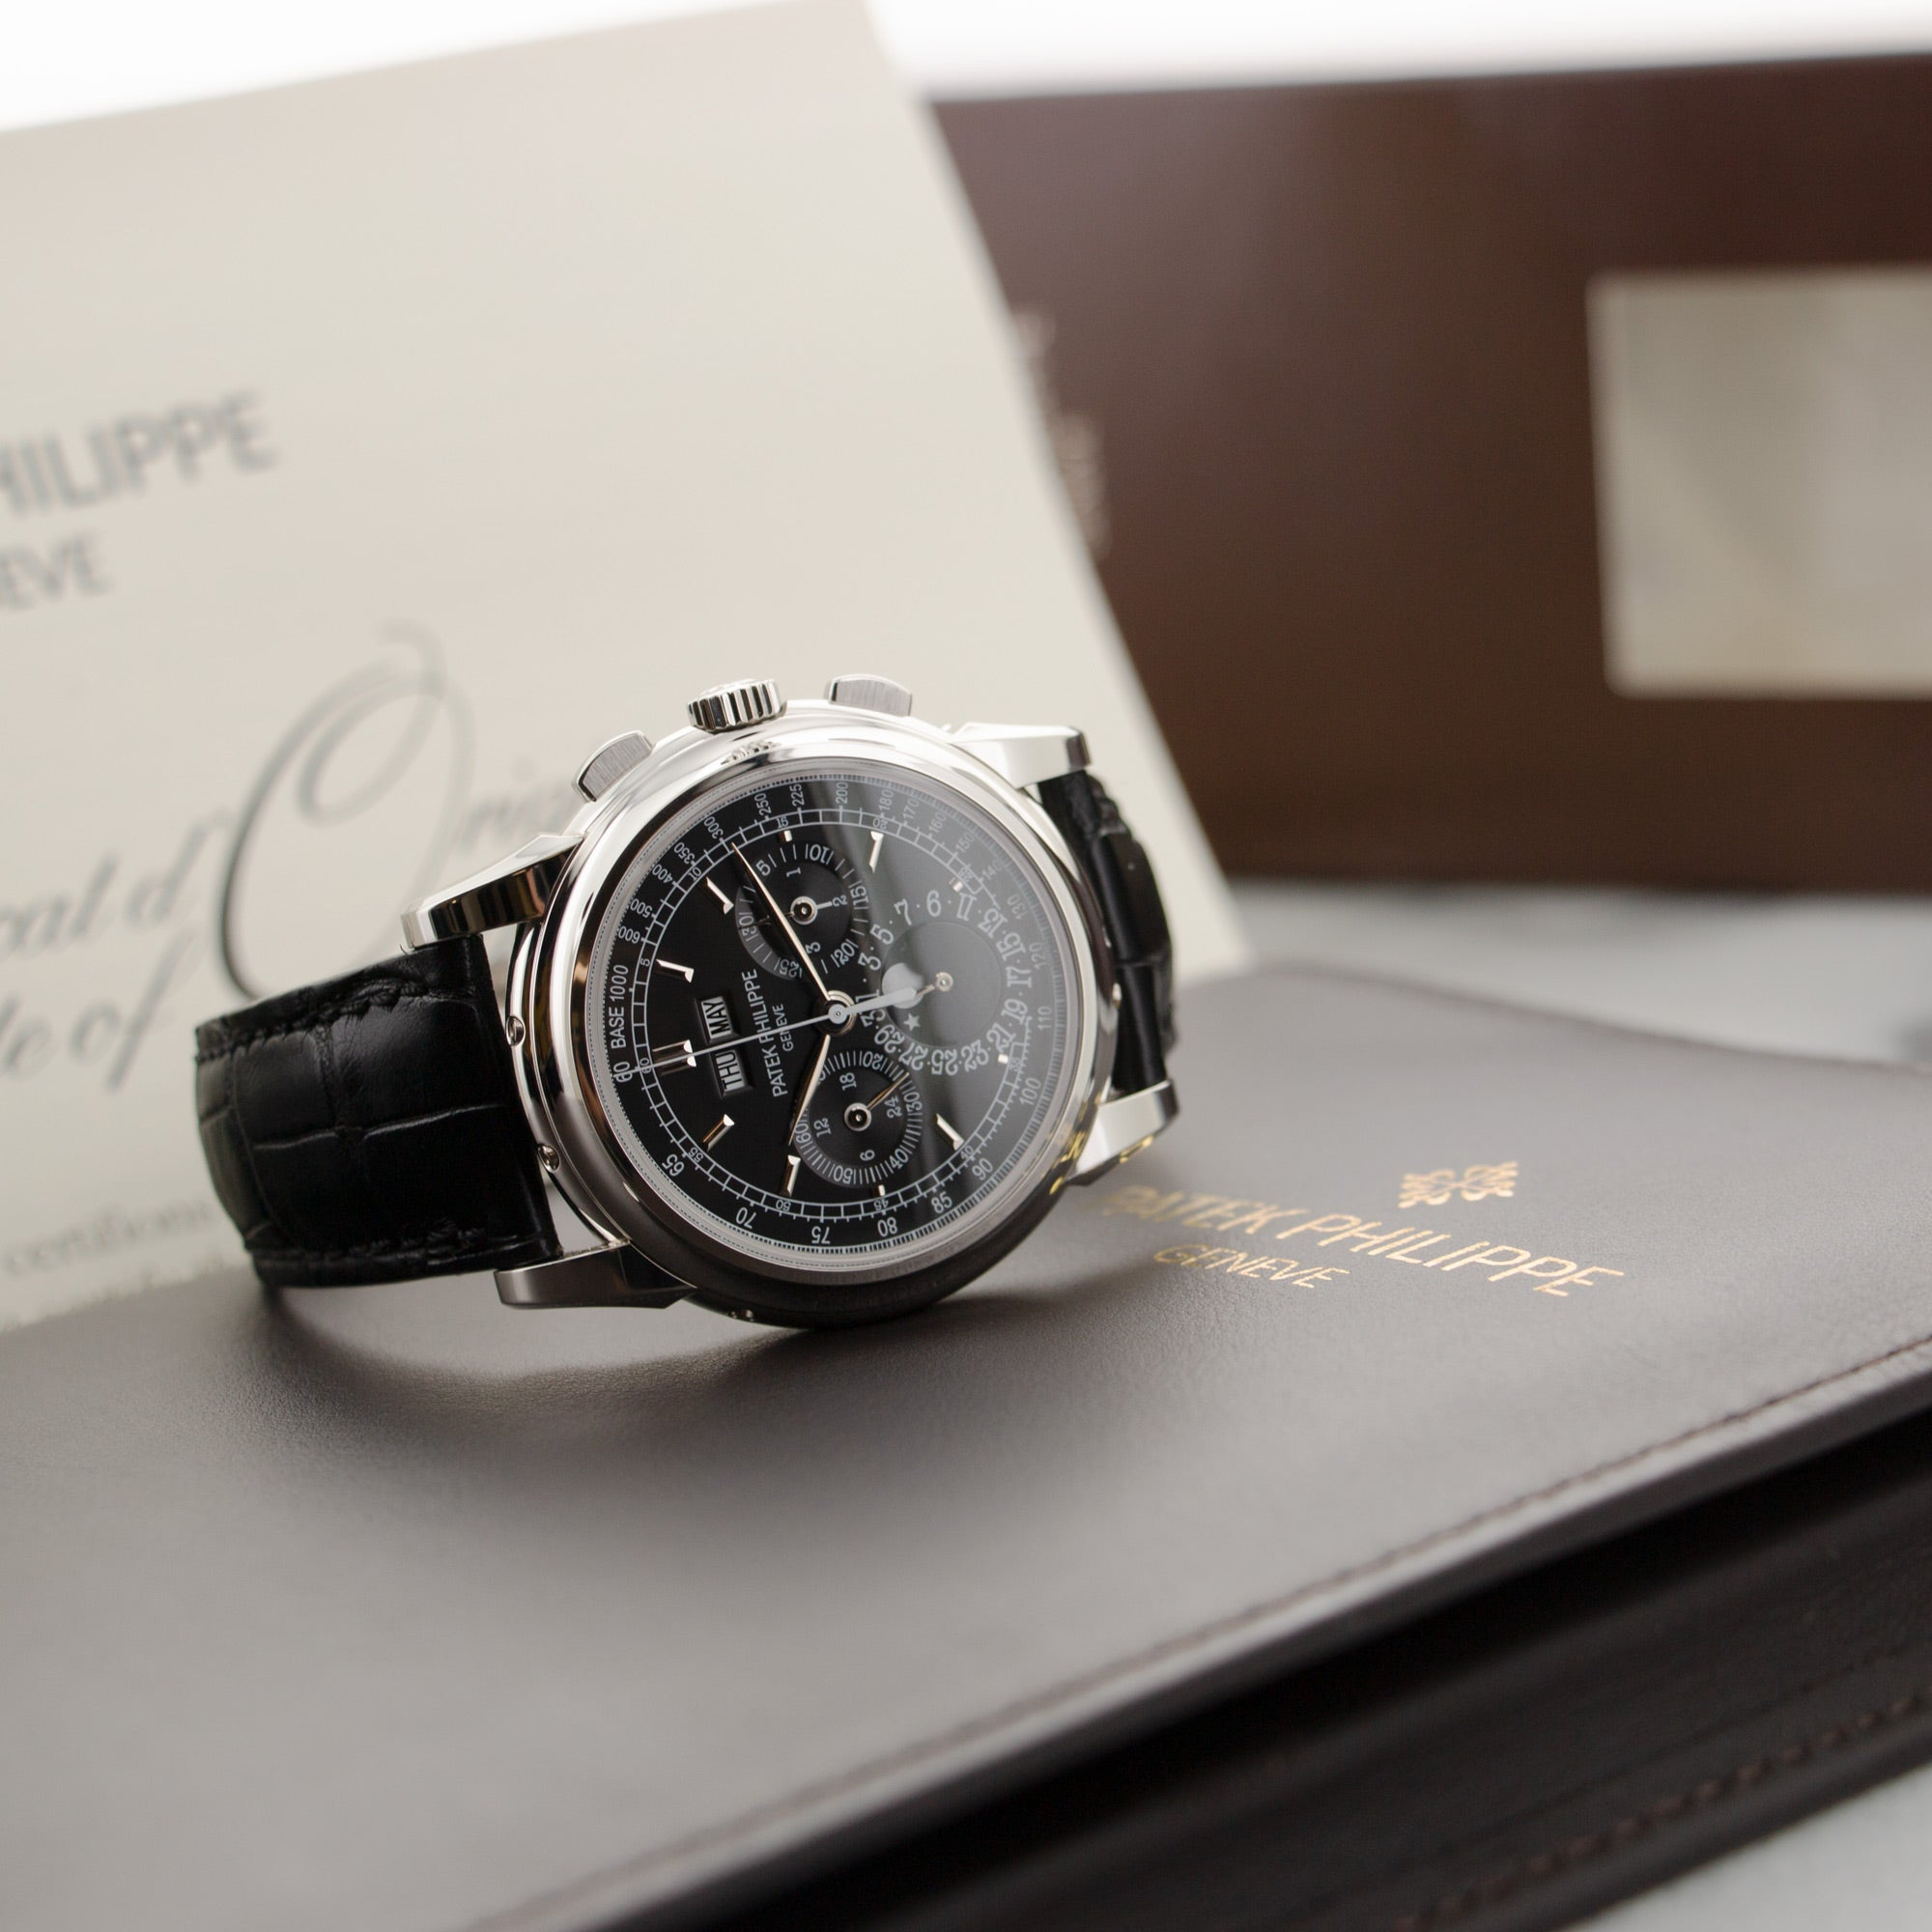 Patek Philippe Perpetual Calendar Chrono 5970P Platinum  Likely Never Polished, Original Finish Gents Platinum Black 40mm Manual 2010 Black Crocodile Box, Certificate, and Additional Solid Case Back